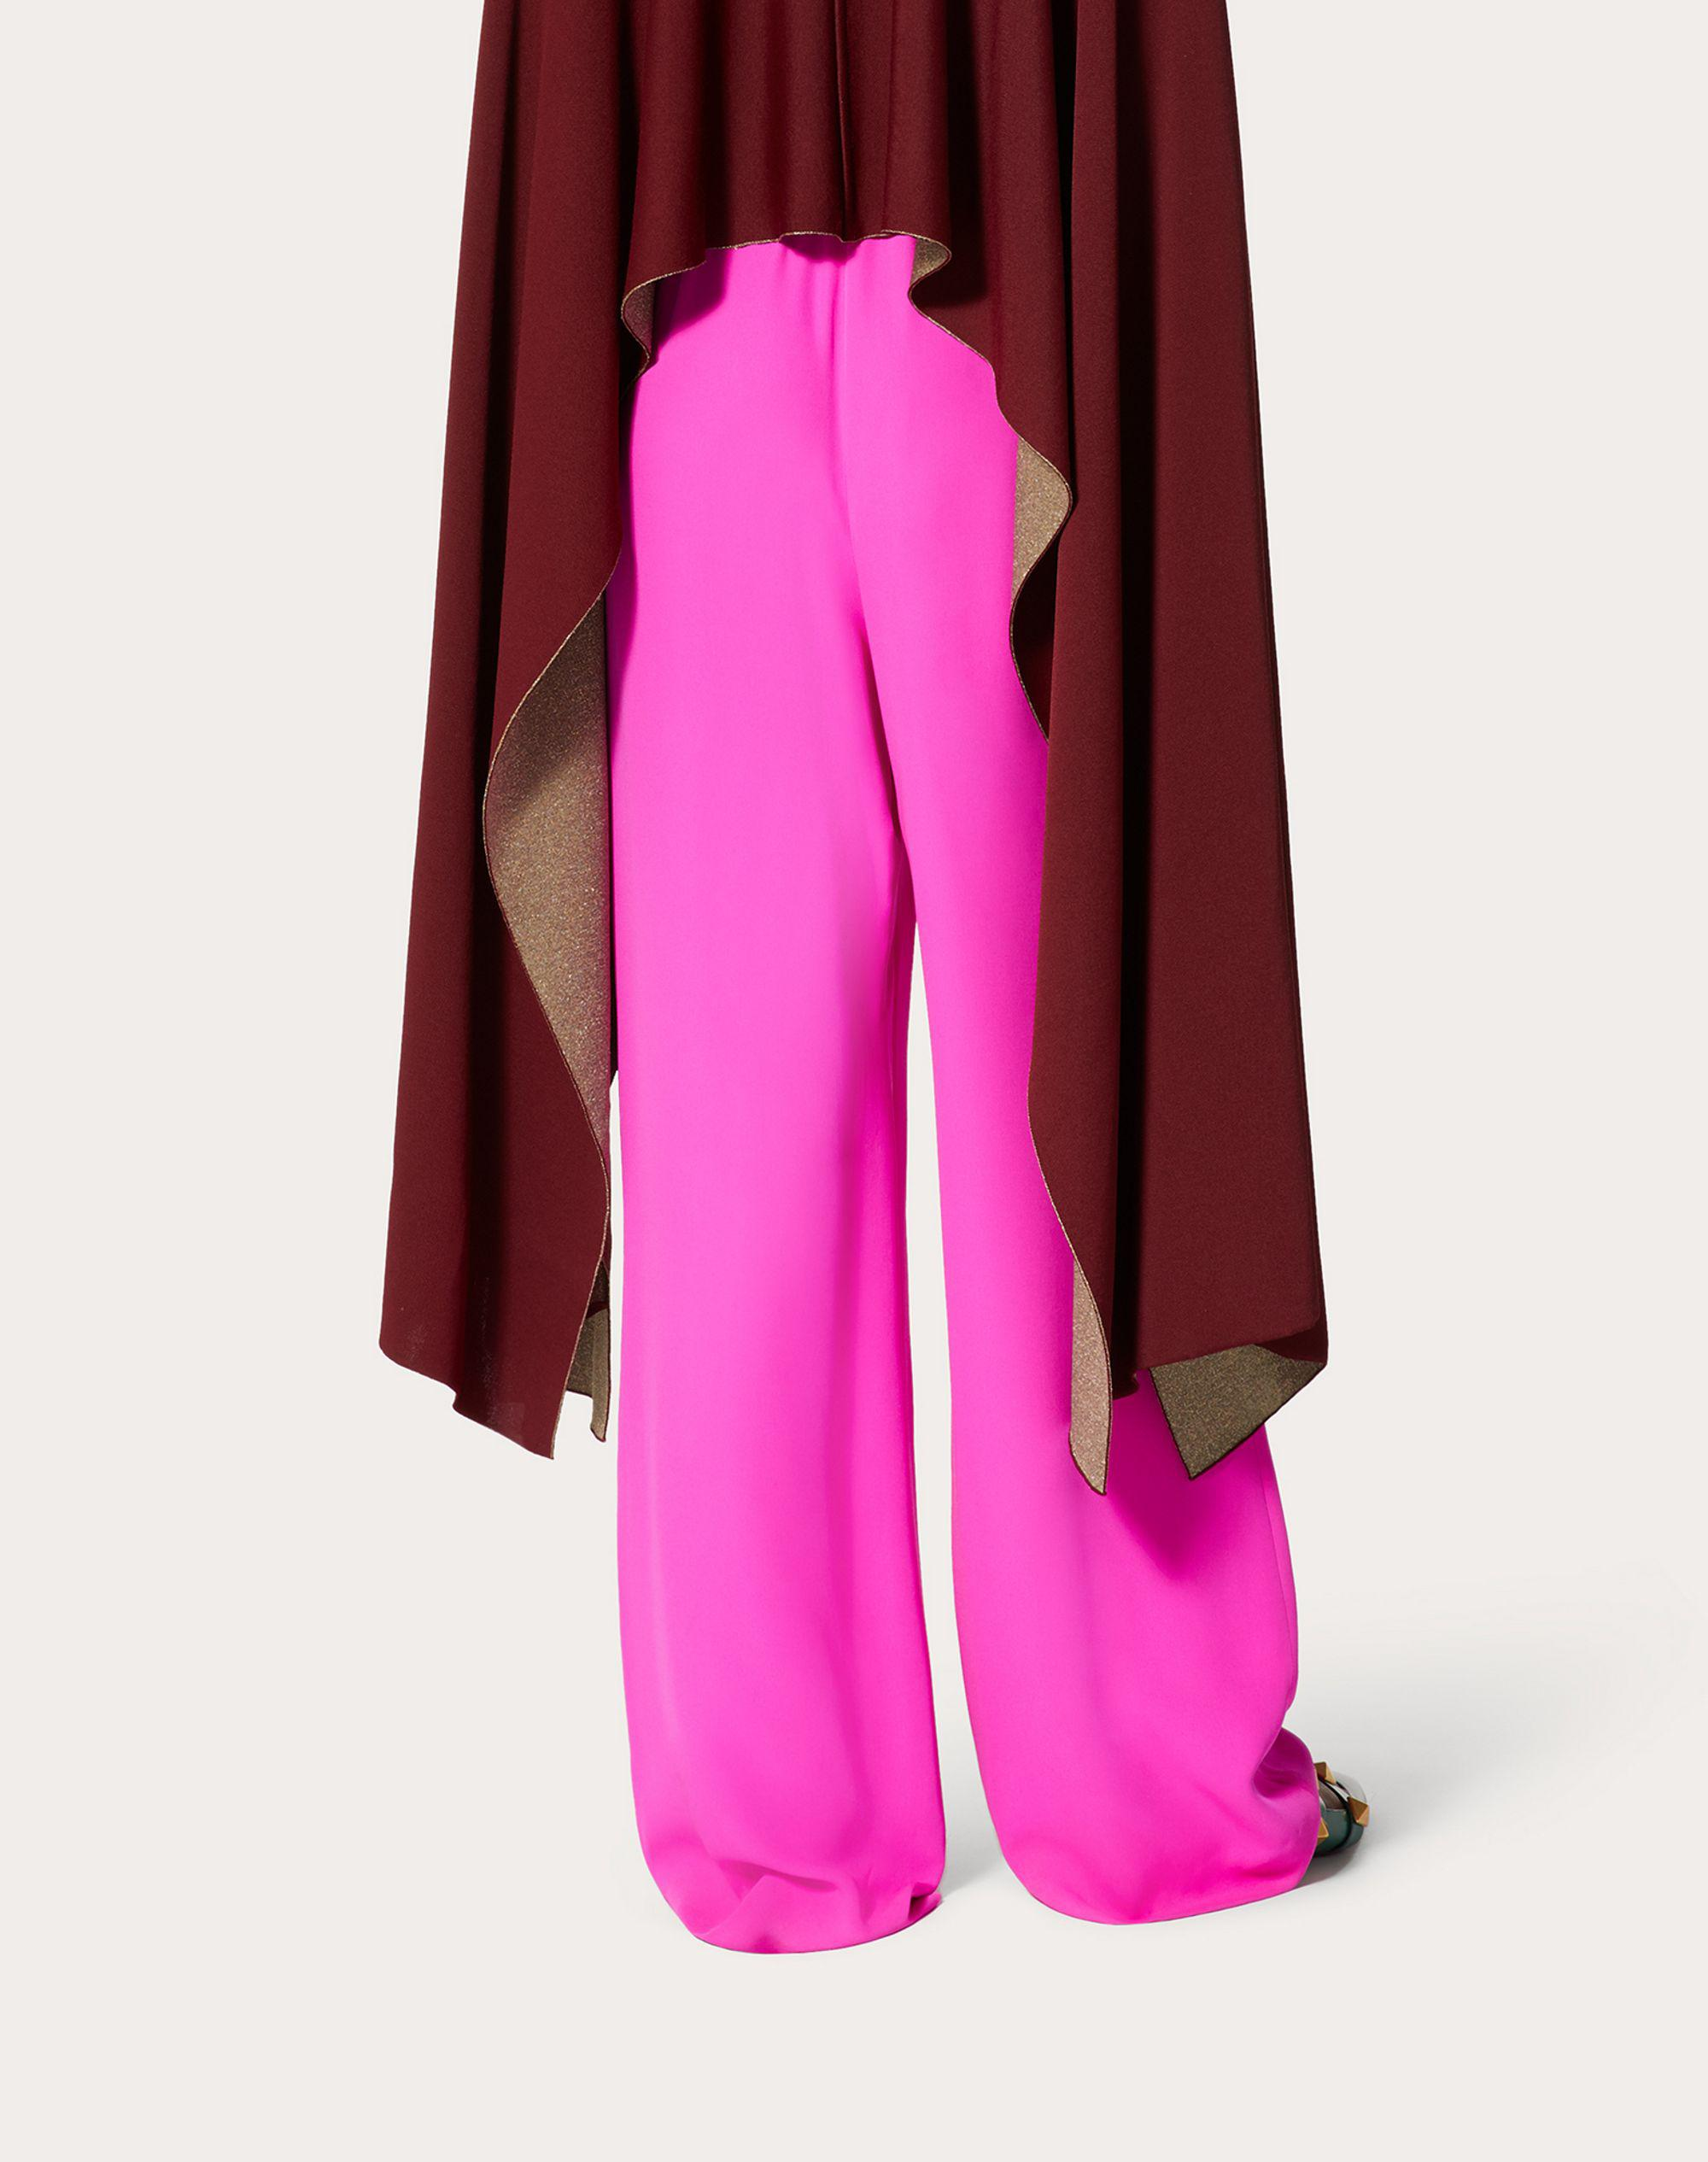 CADY COUTURE PANTS 3